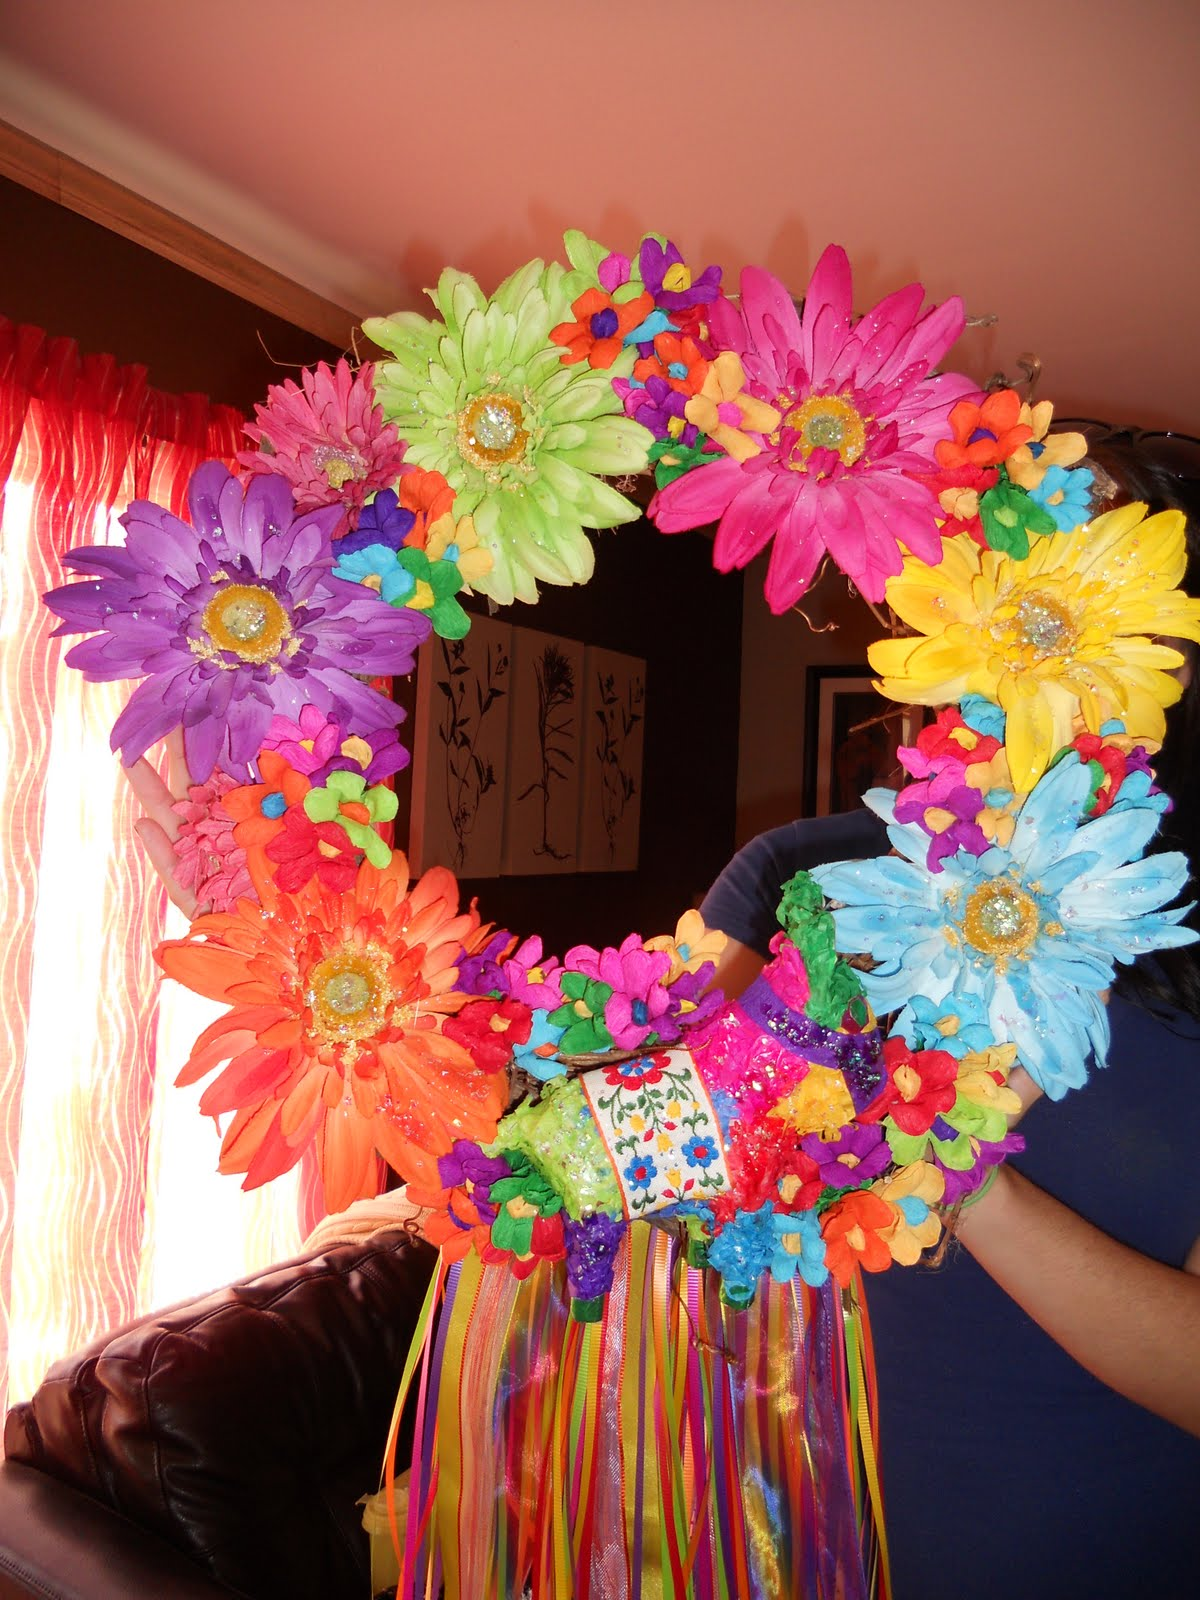 Sew Crafty Girls It S All About Fiesta This Week